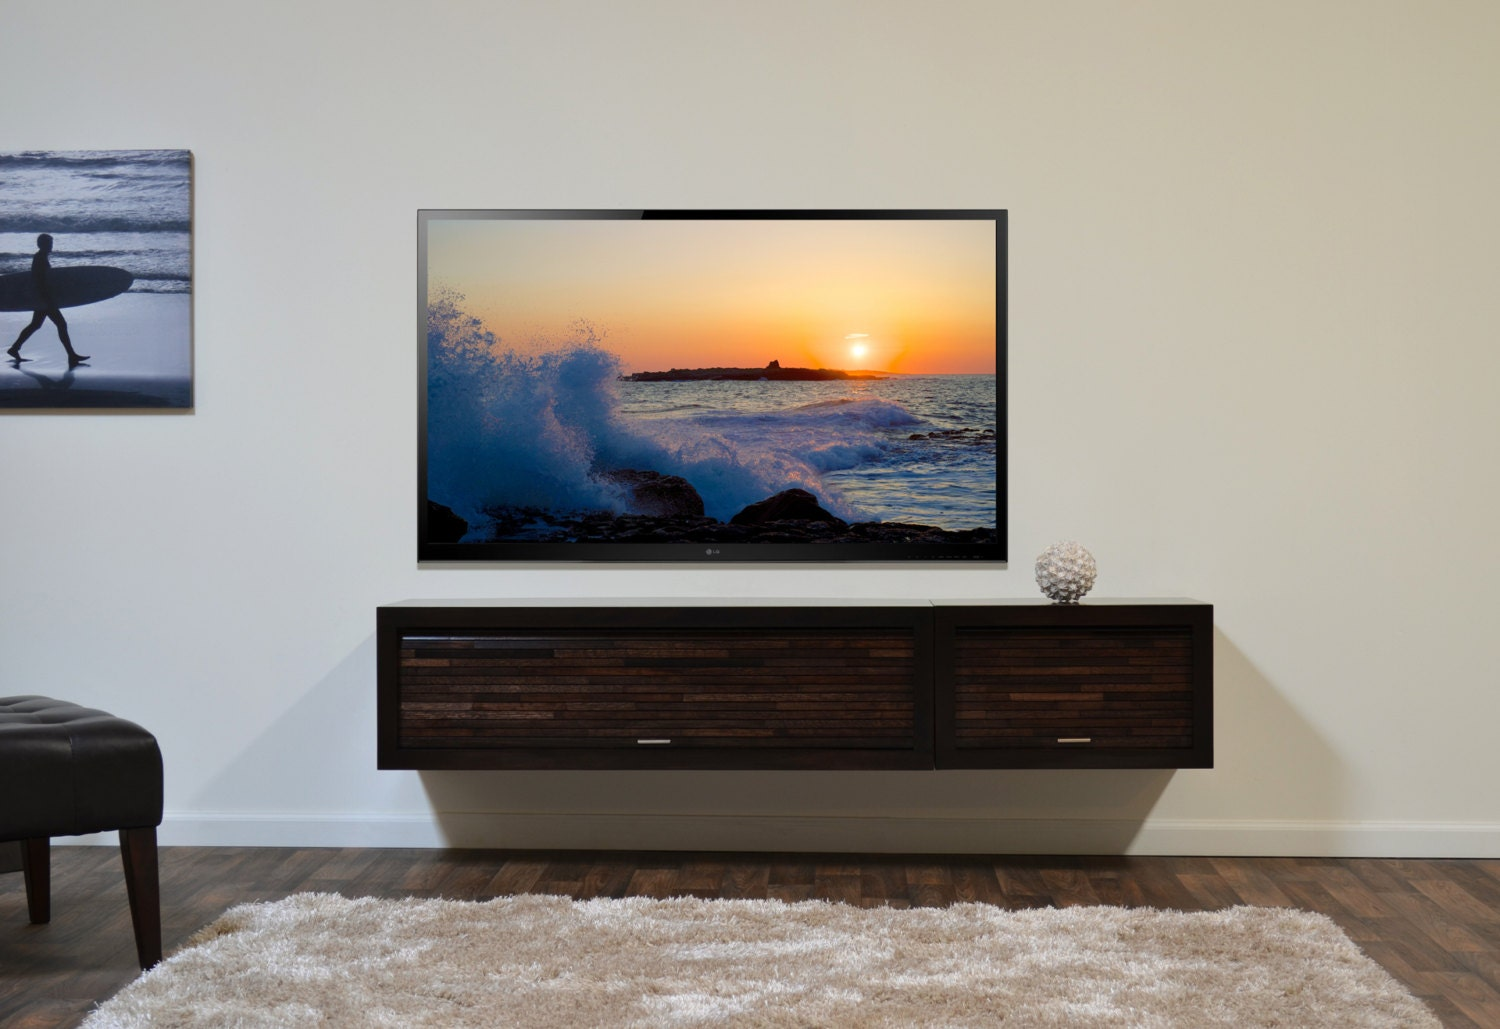 Top 10 TV Stands P1 besides Zuo Fissure Console Coffee Table also Magnussen Sofa Table Furniture additionally 181761096476 moreover popscreen. on floating media console 2